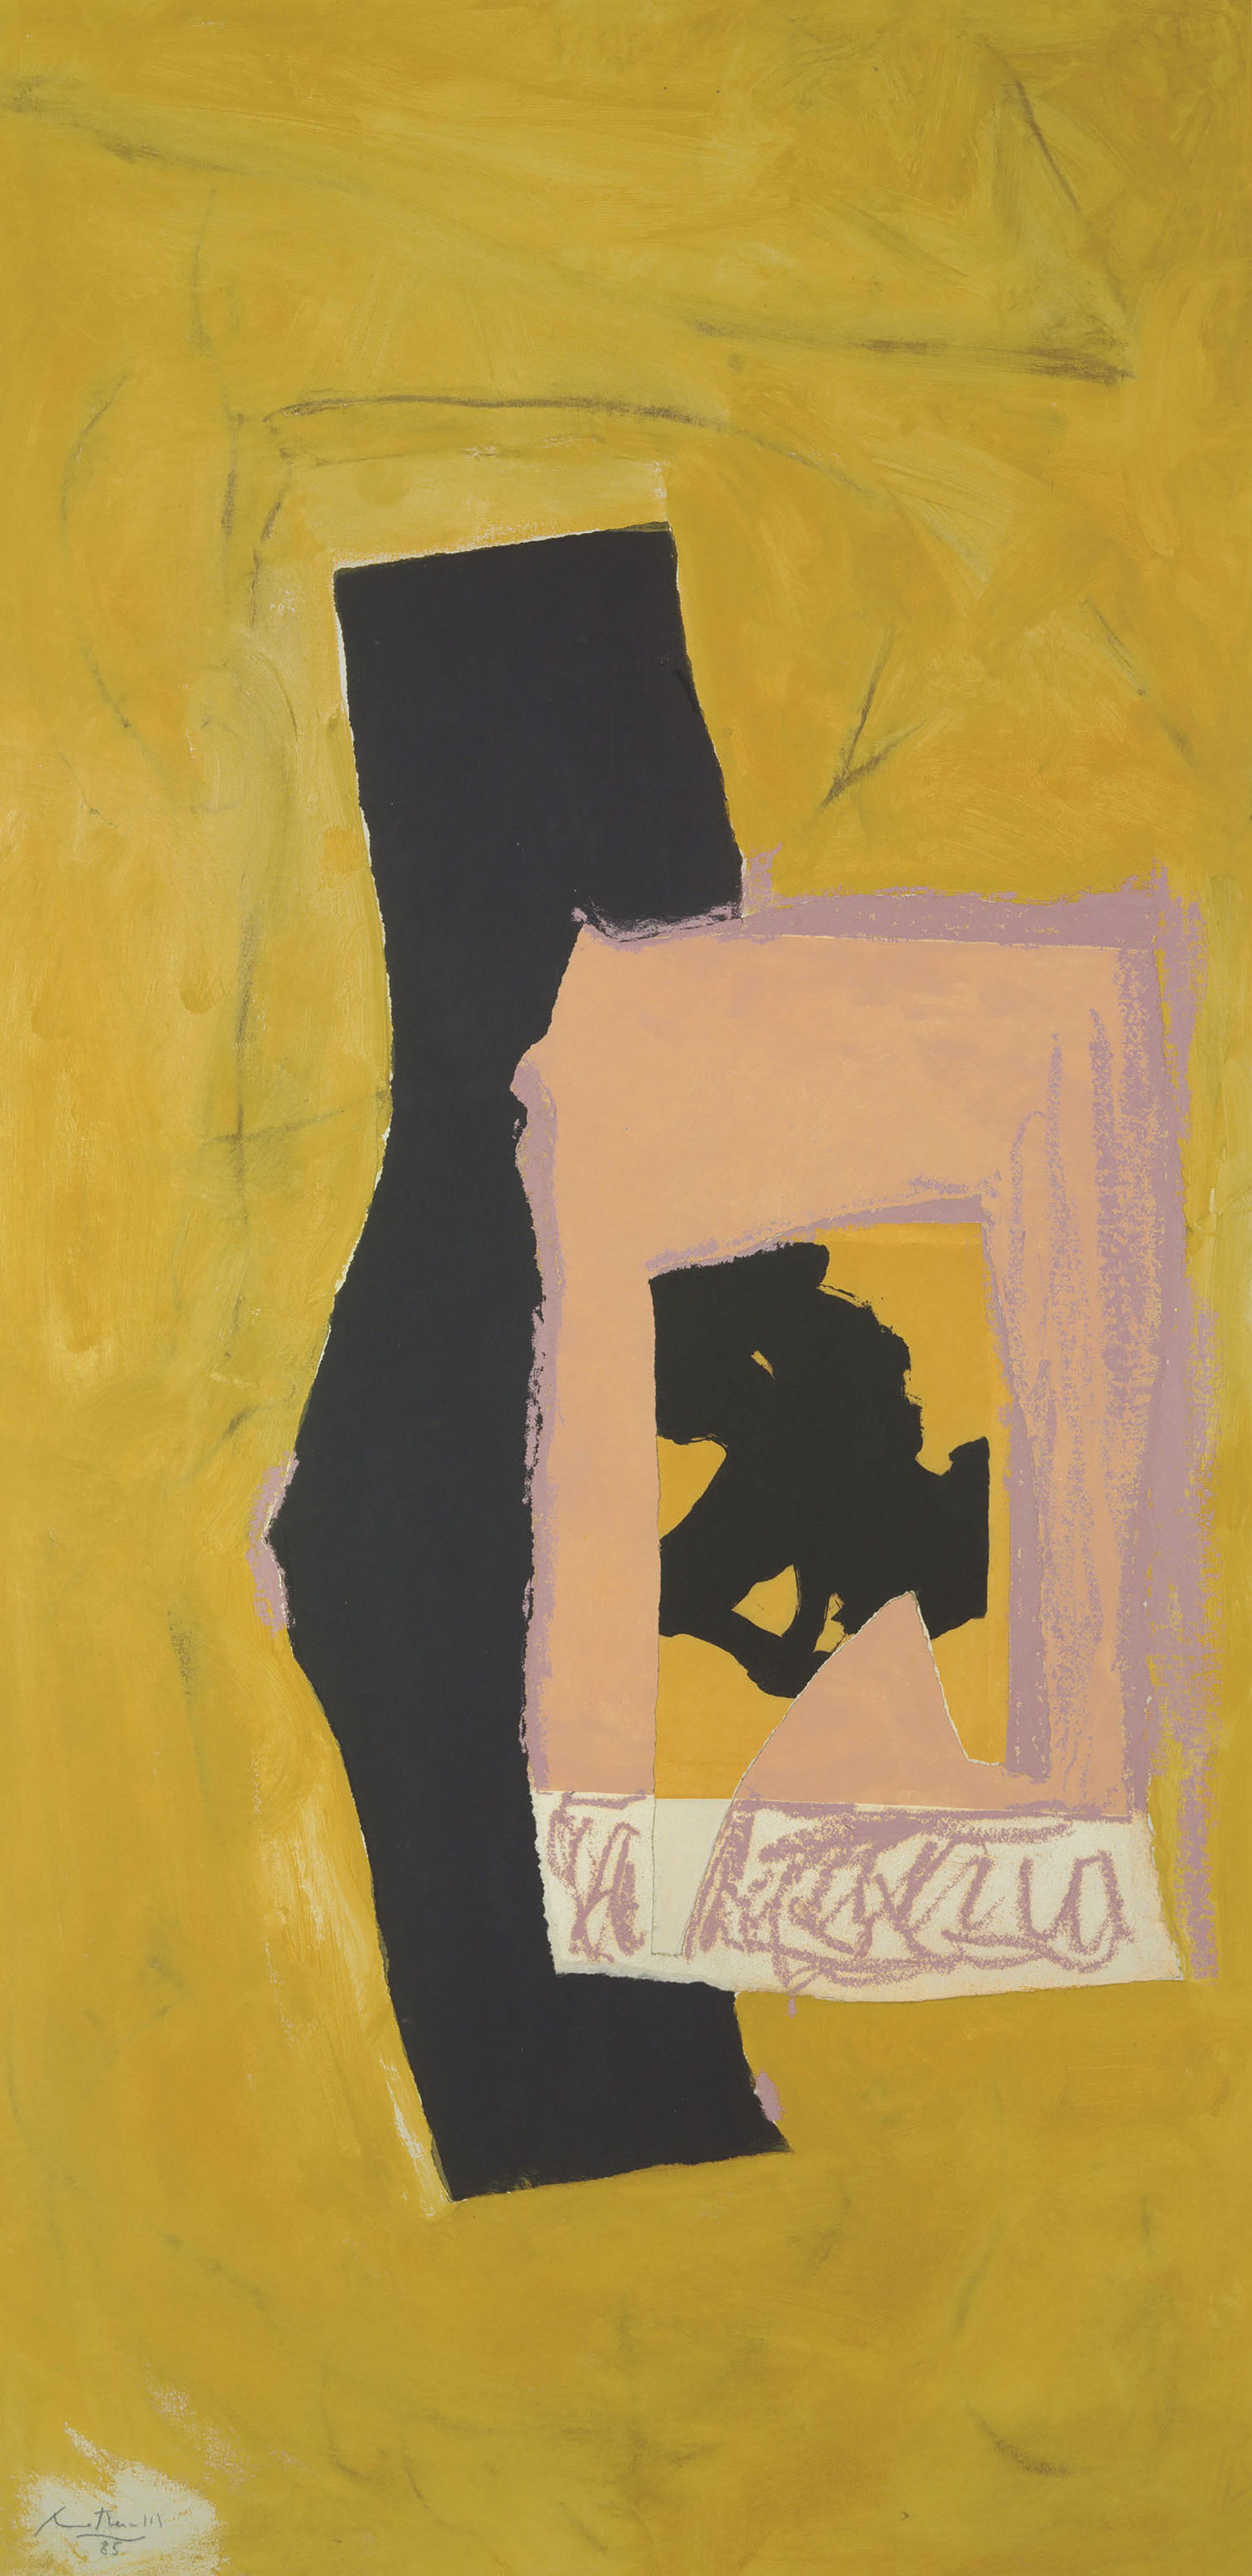 Untitled, 1985, Acrylic, oil stick, charcoal and paper collage on canvas laid down on Masonite, 72 1/8 x 35 7/8 inches